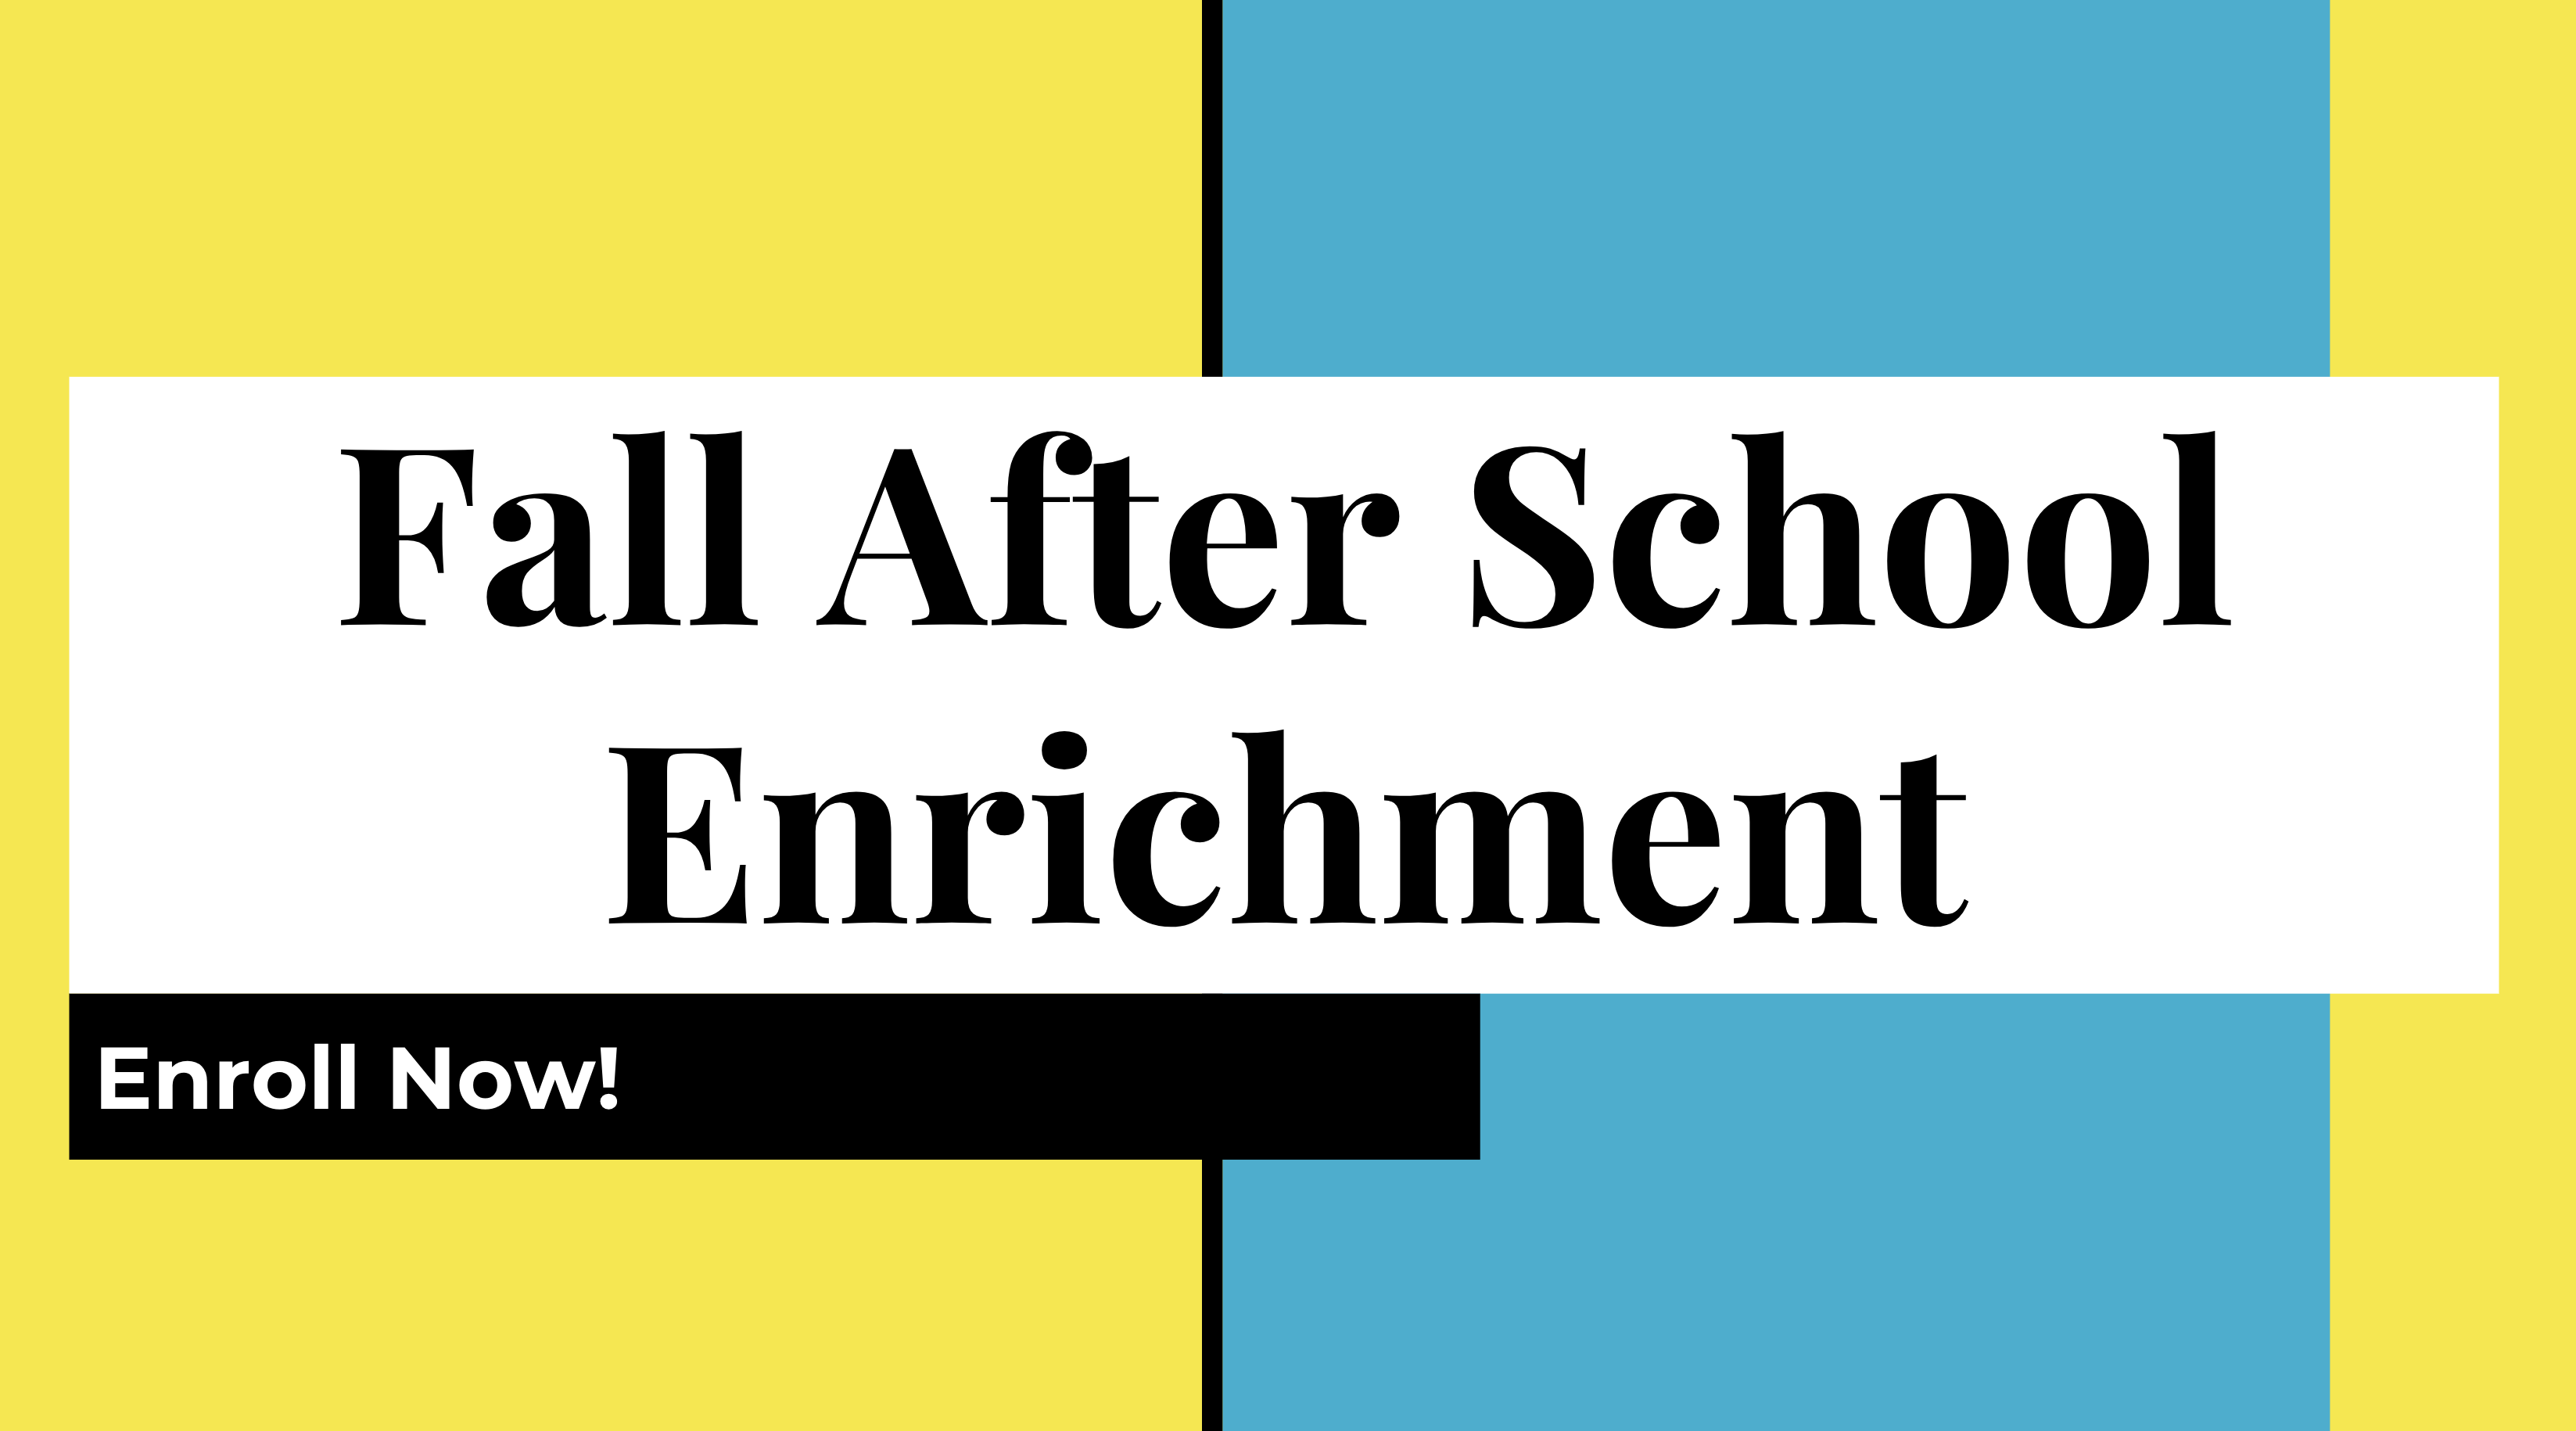 Fall After School Enrichment